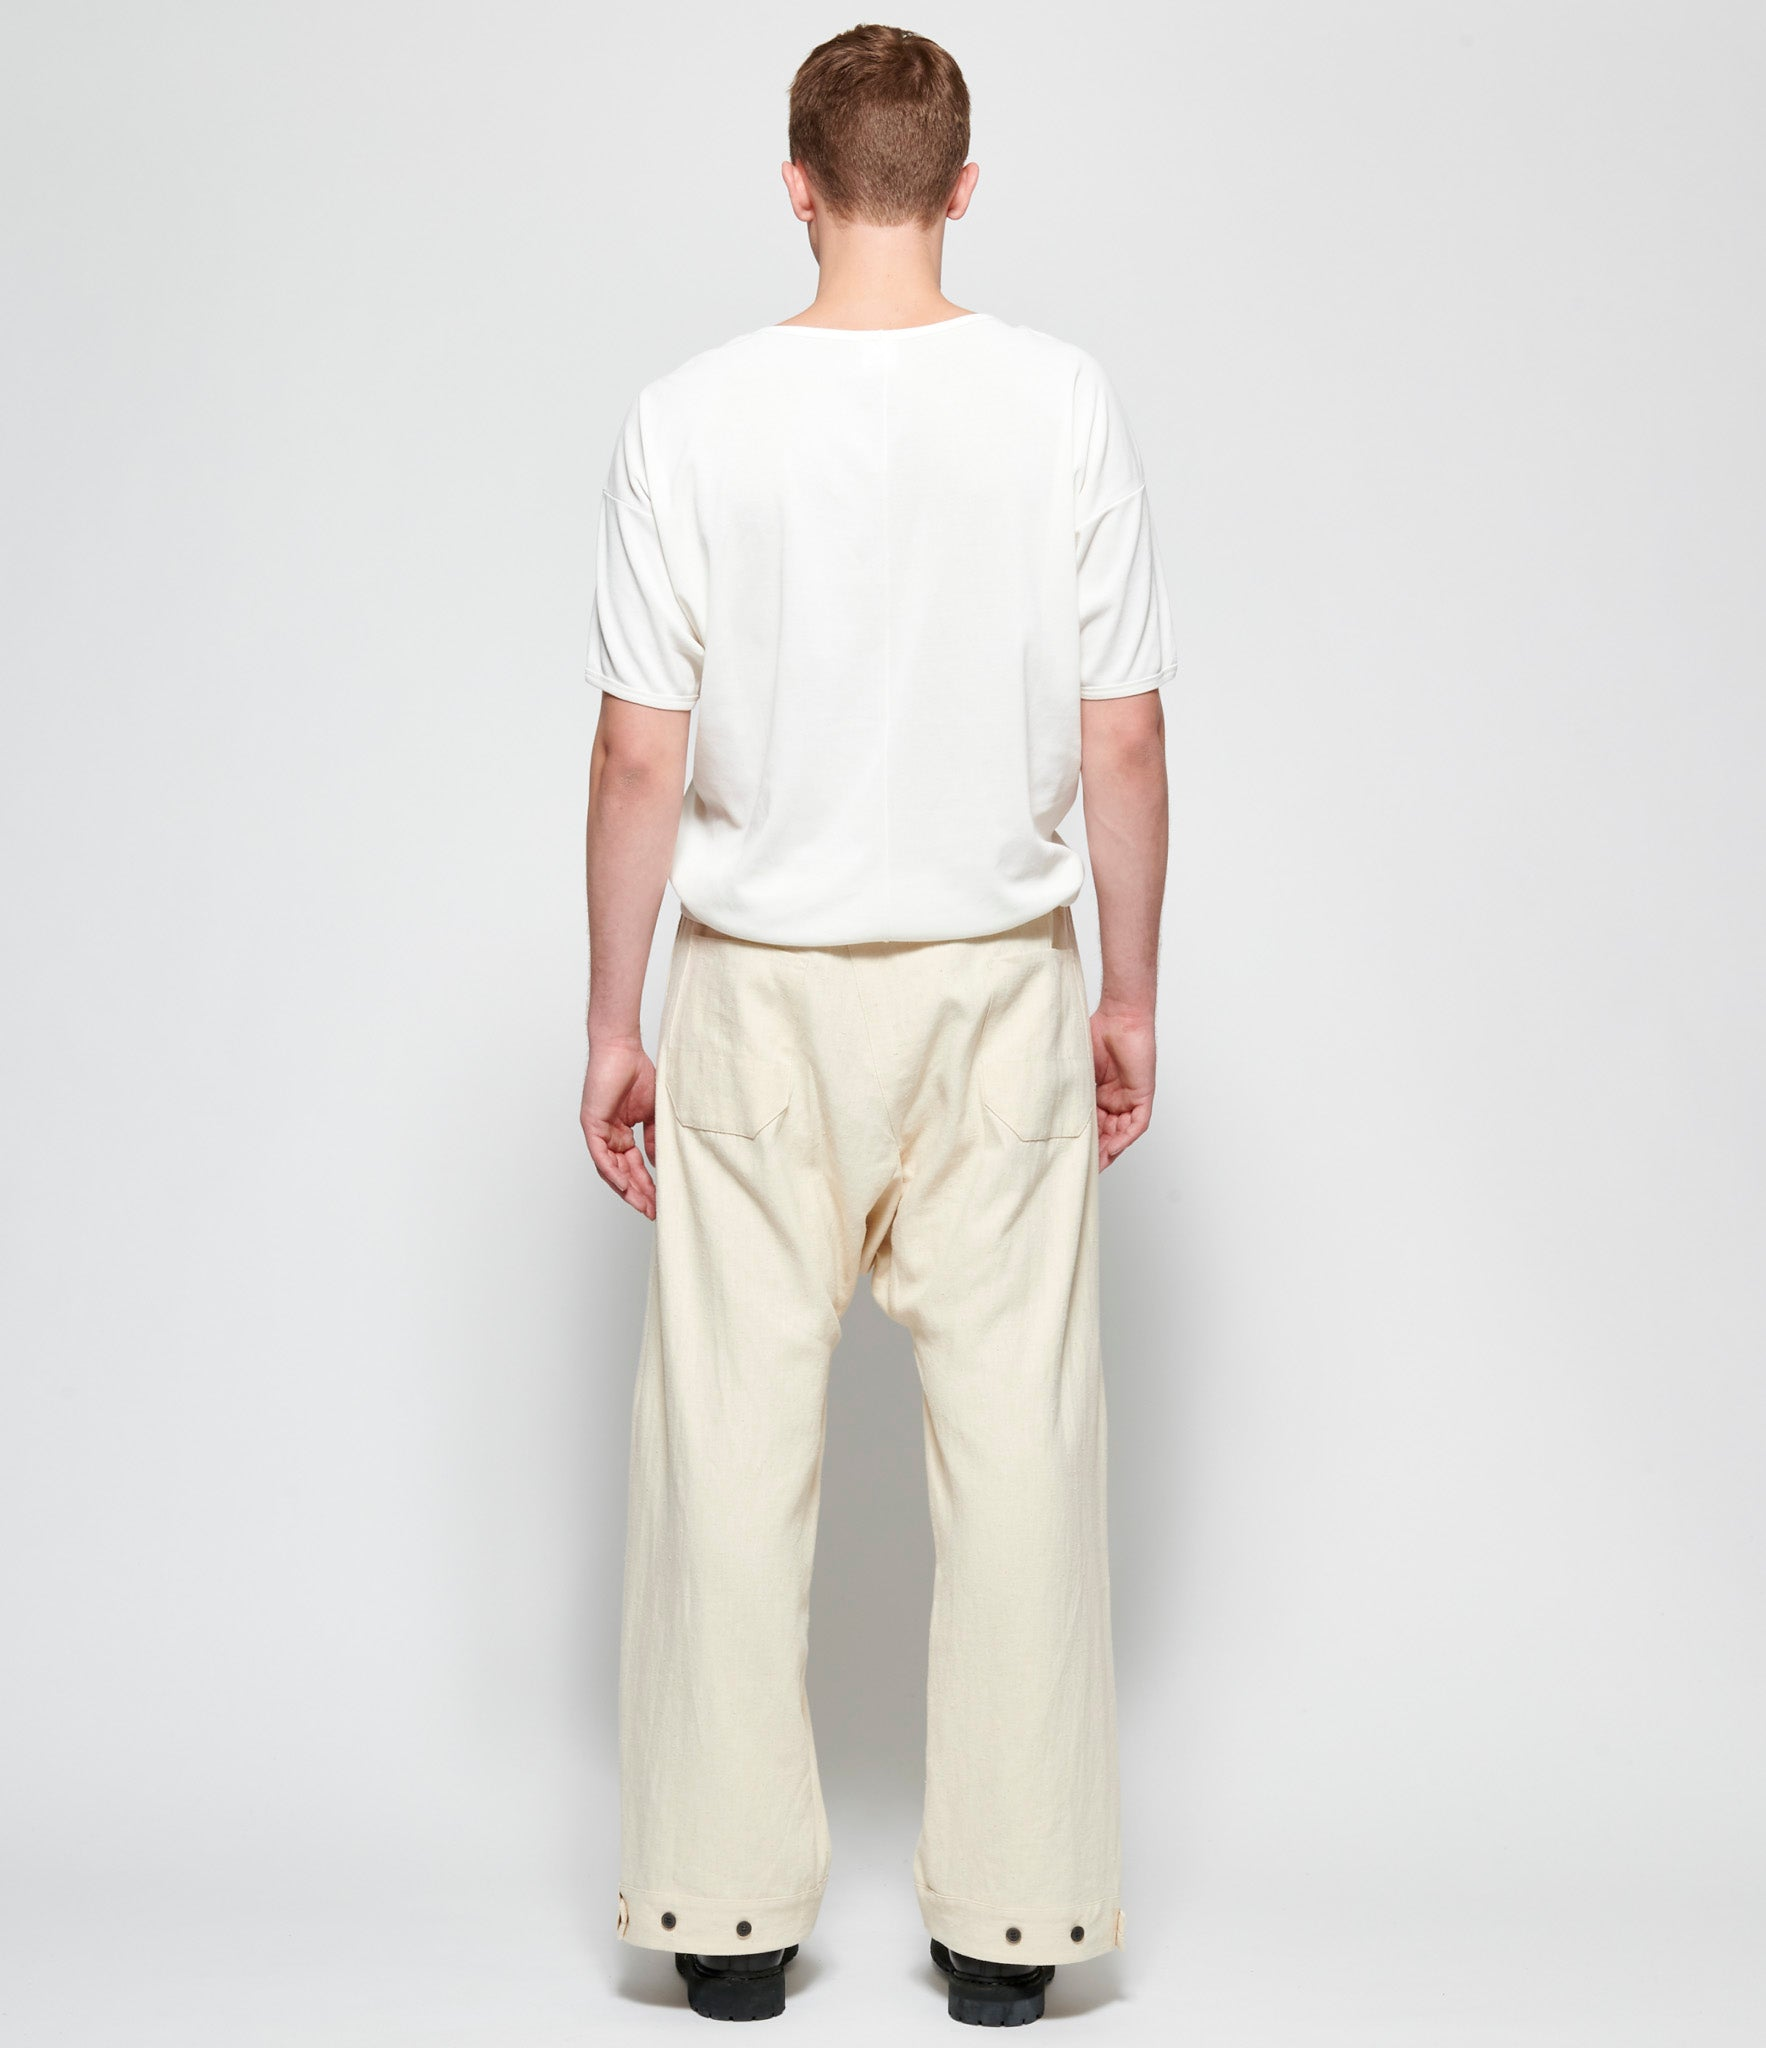 Jan Jan Van Essche Kinari Hemp Cloth Trousers